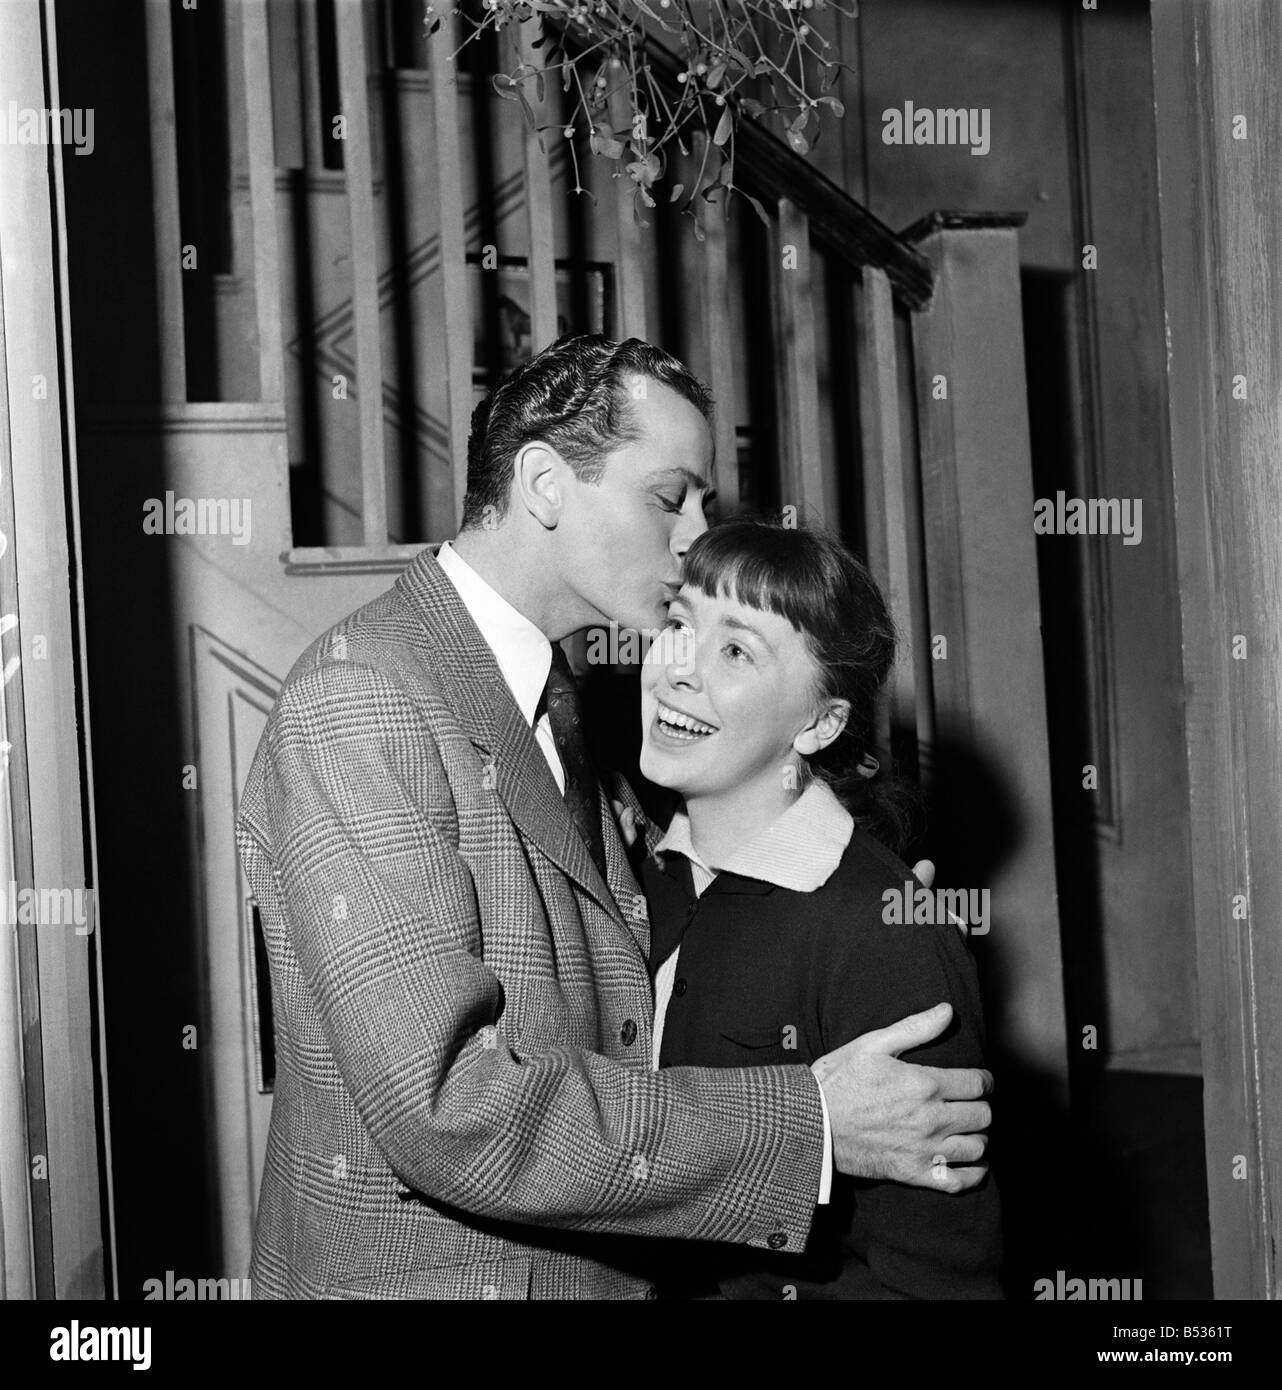 Mistletoe. Actor Barry Sinclair and Sally Lewis seen here in a scene from the play 'Friendly Relations'. - Stock Image